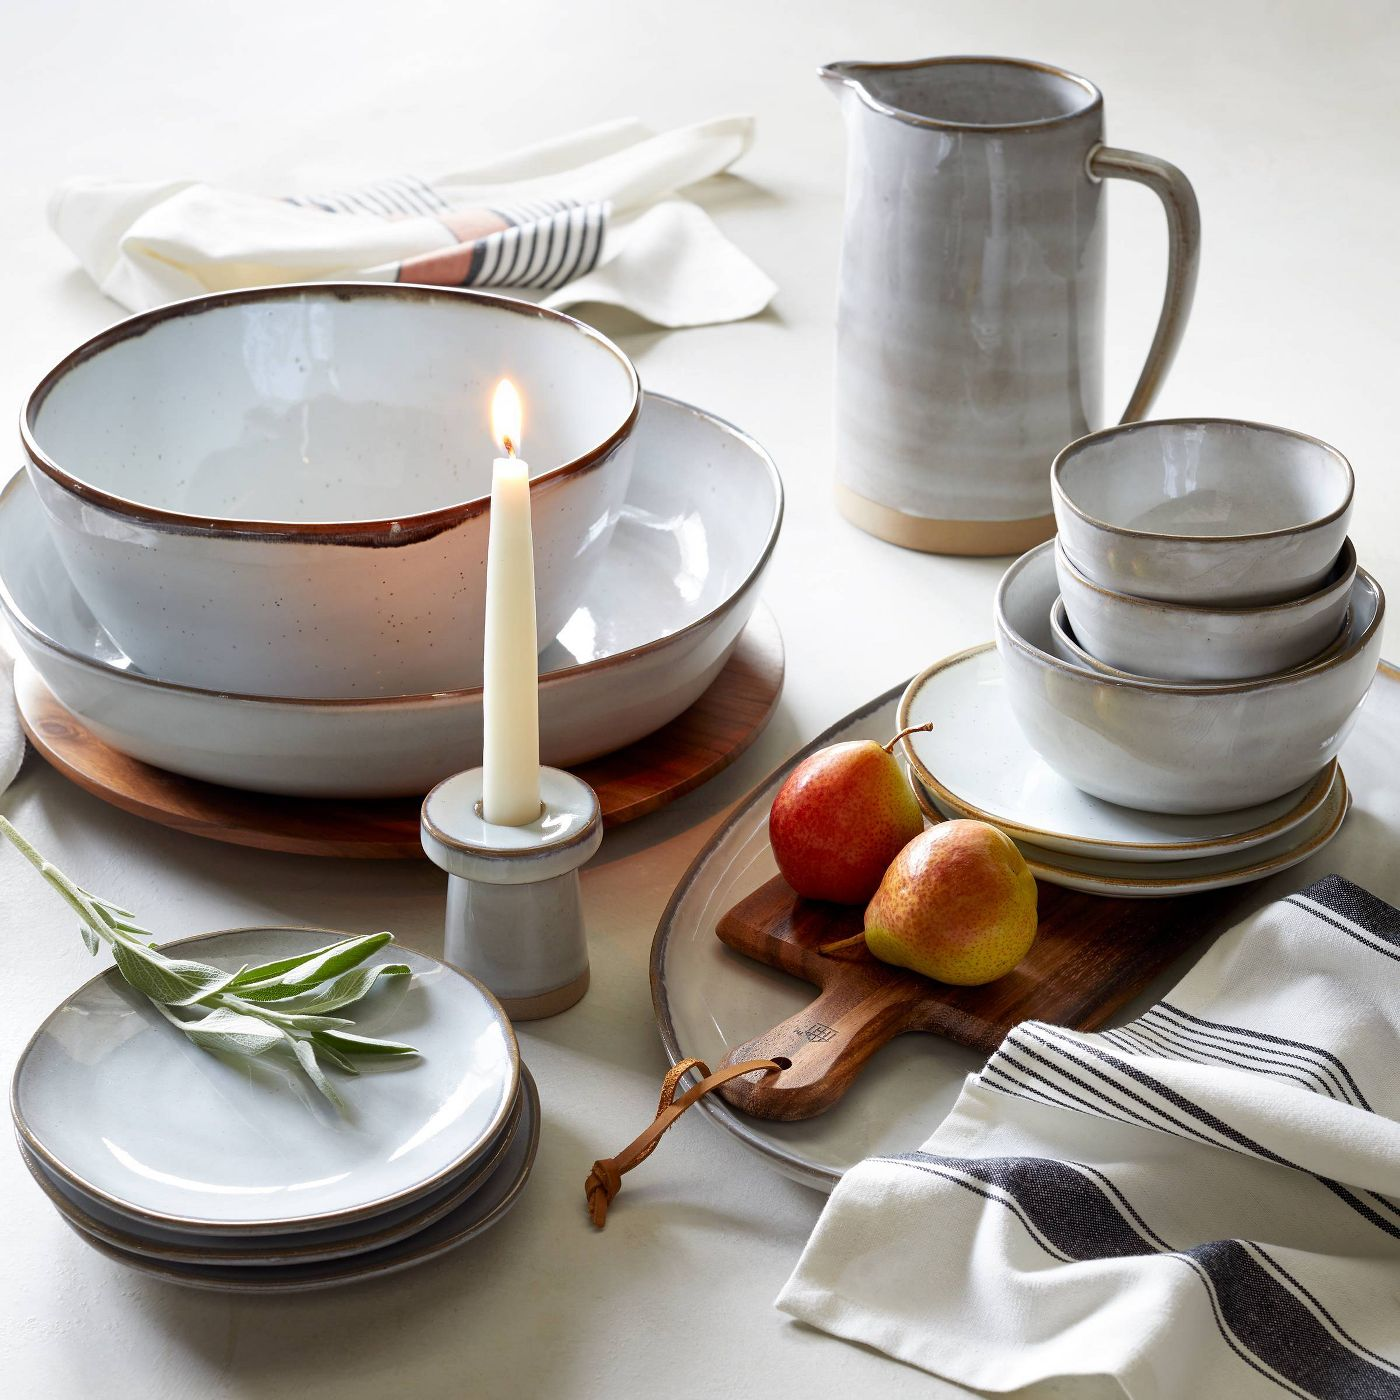 Hearth & Hand with Magnolia Reactive Glaze Plates